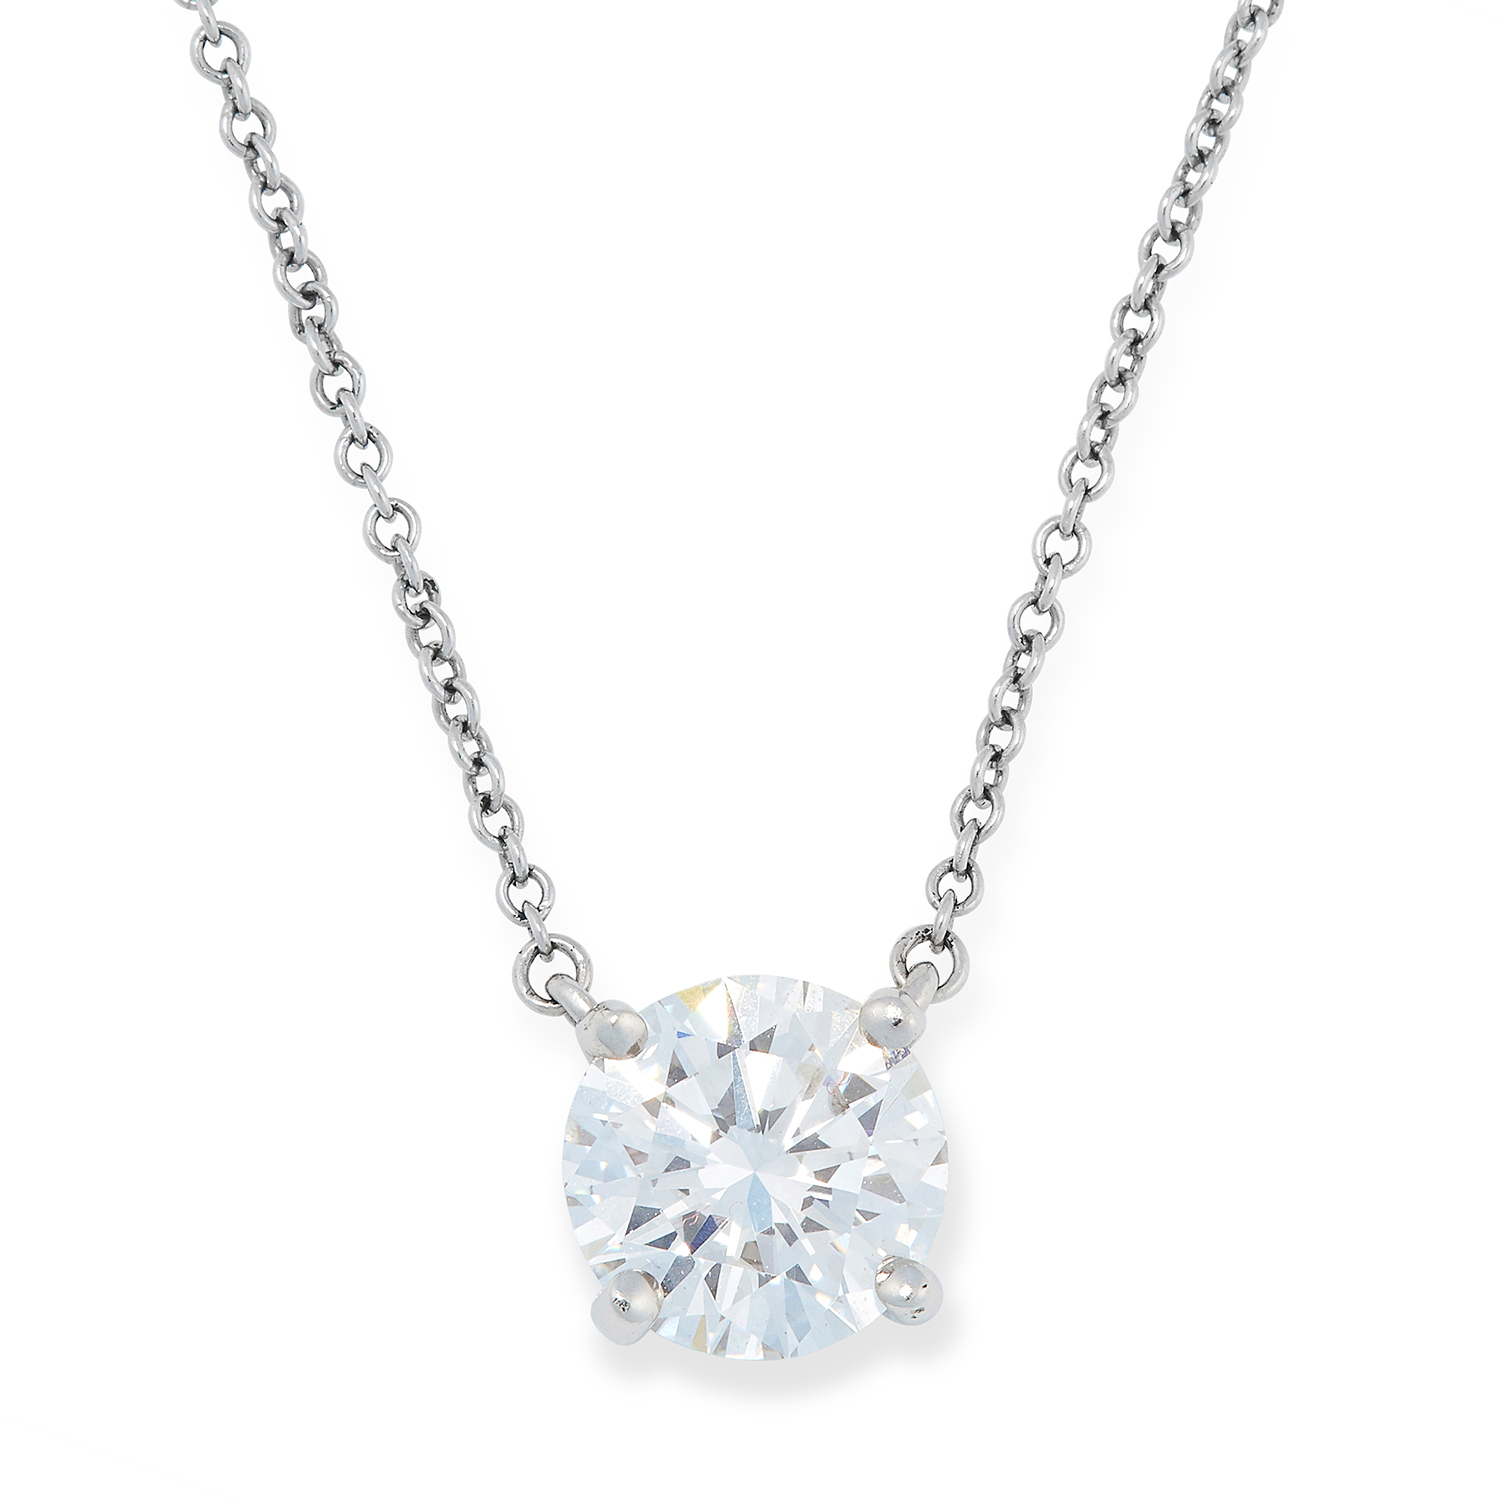 A 1.41 CARAT D VVS1 DIAMOND NECKLACE, TIFFANY & CO in platinum, set with a round modern brilliant